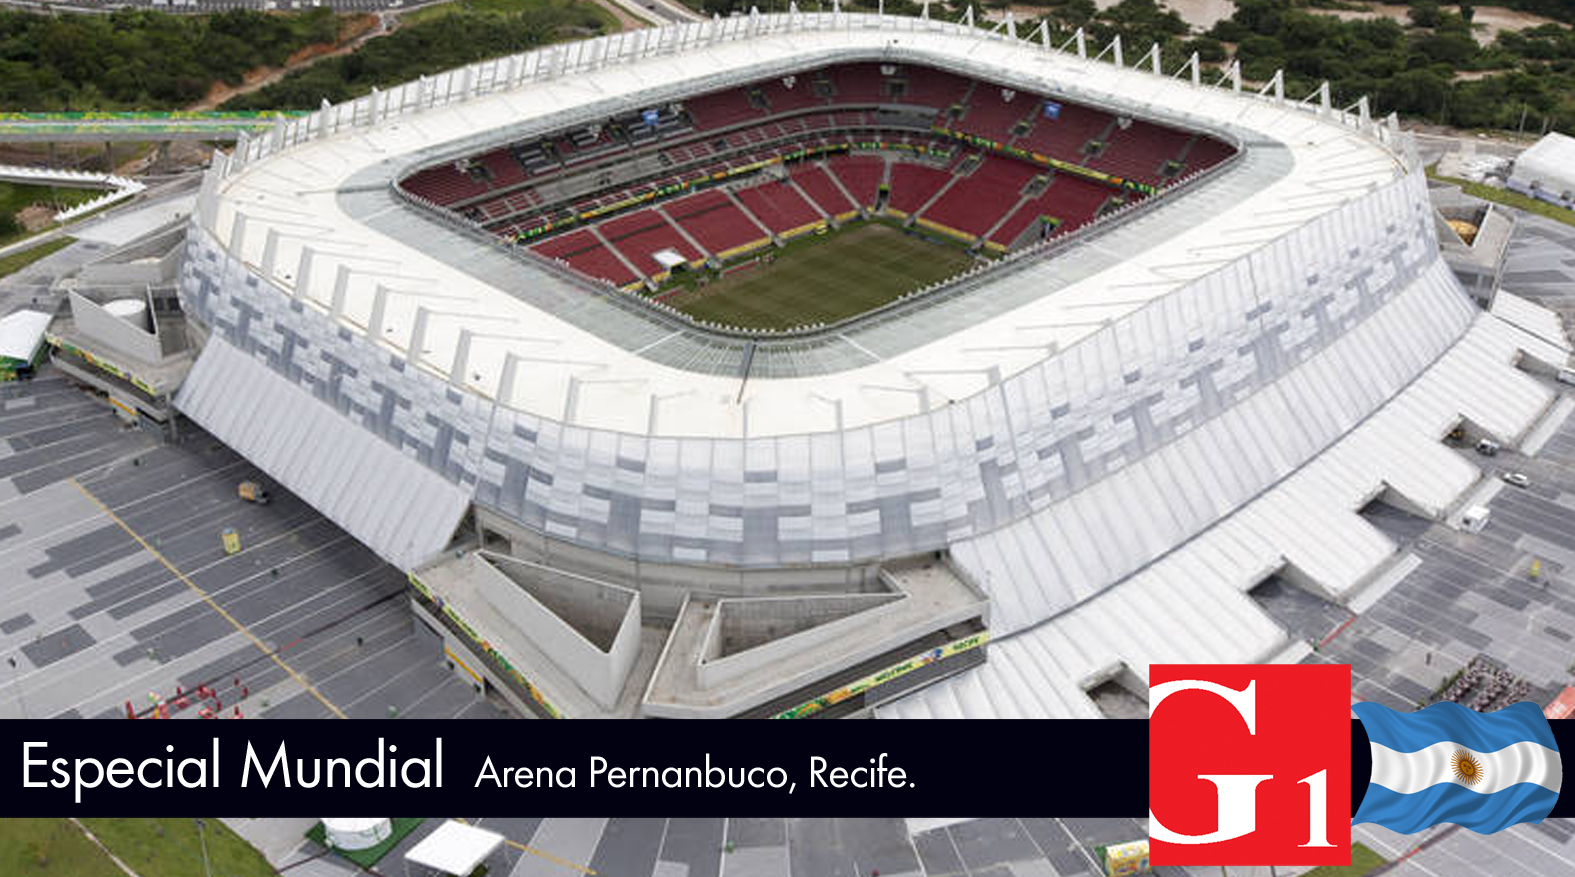 Estadio Arena Pernanbuco Recife - 1575x877